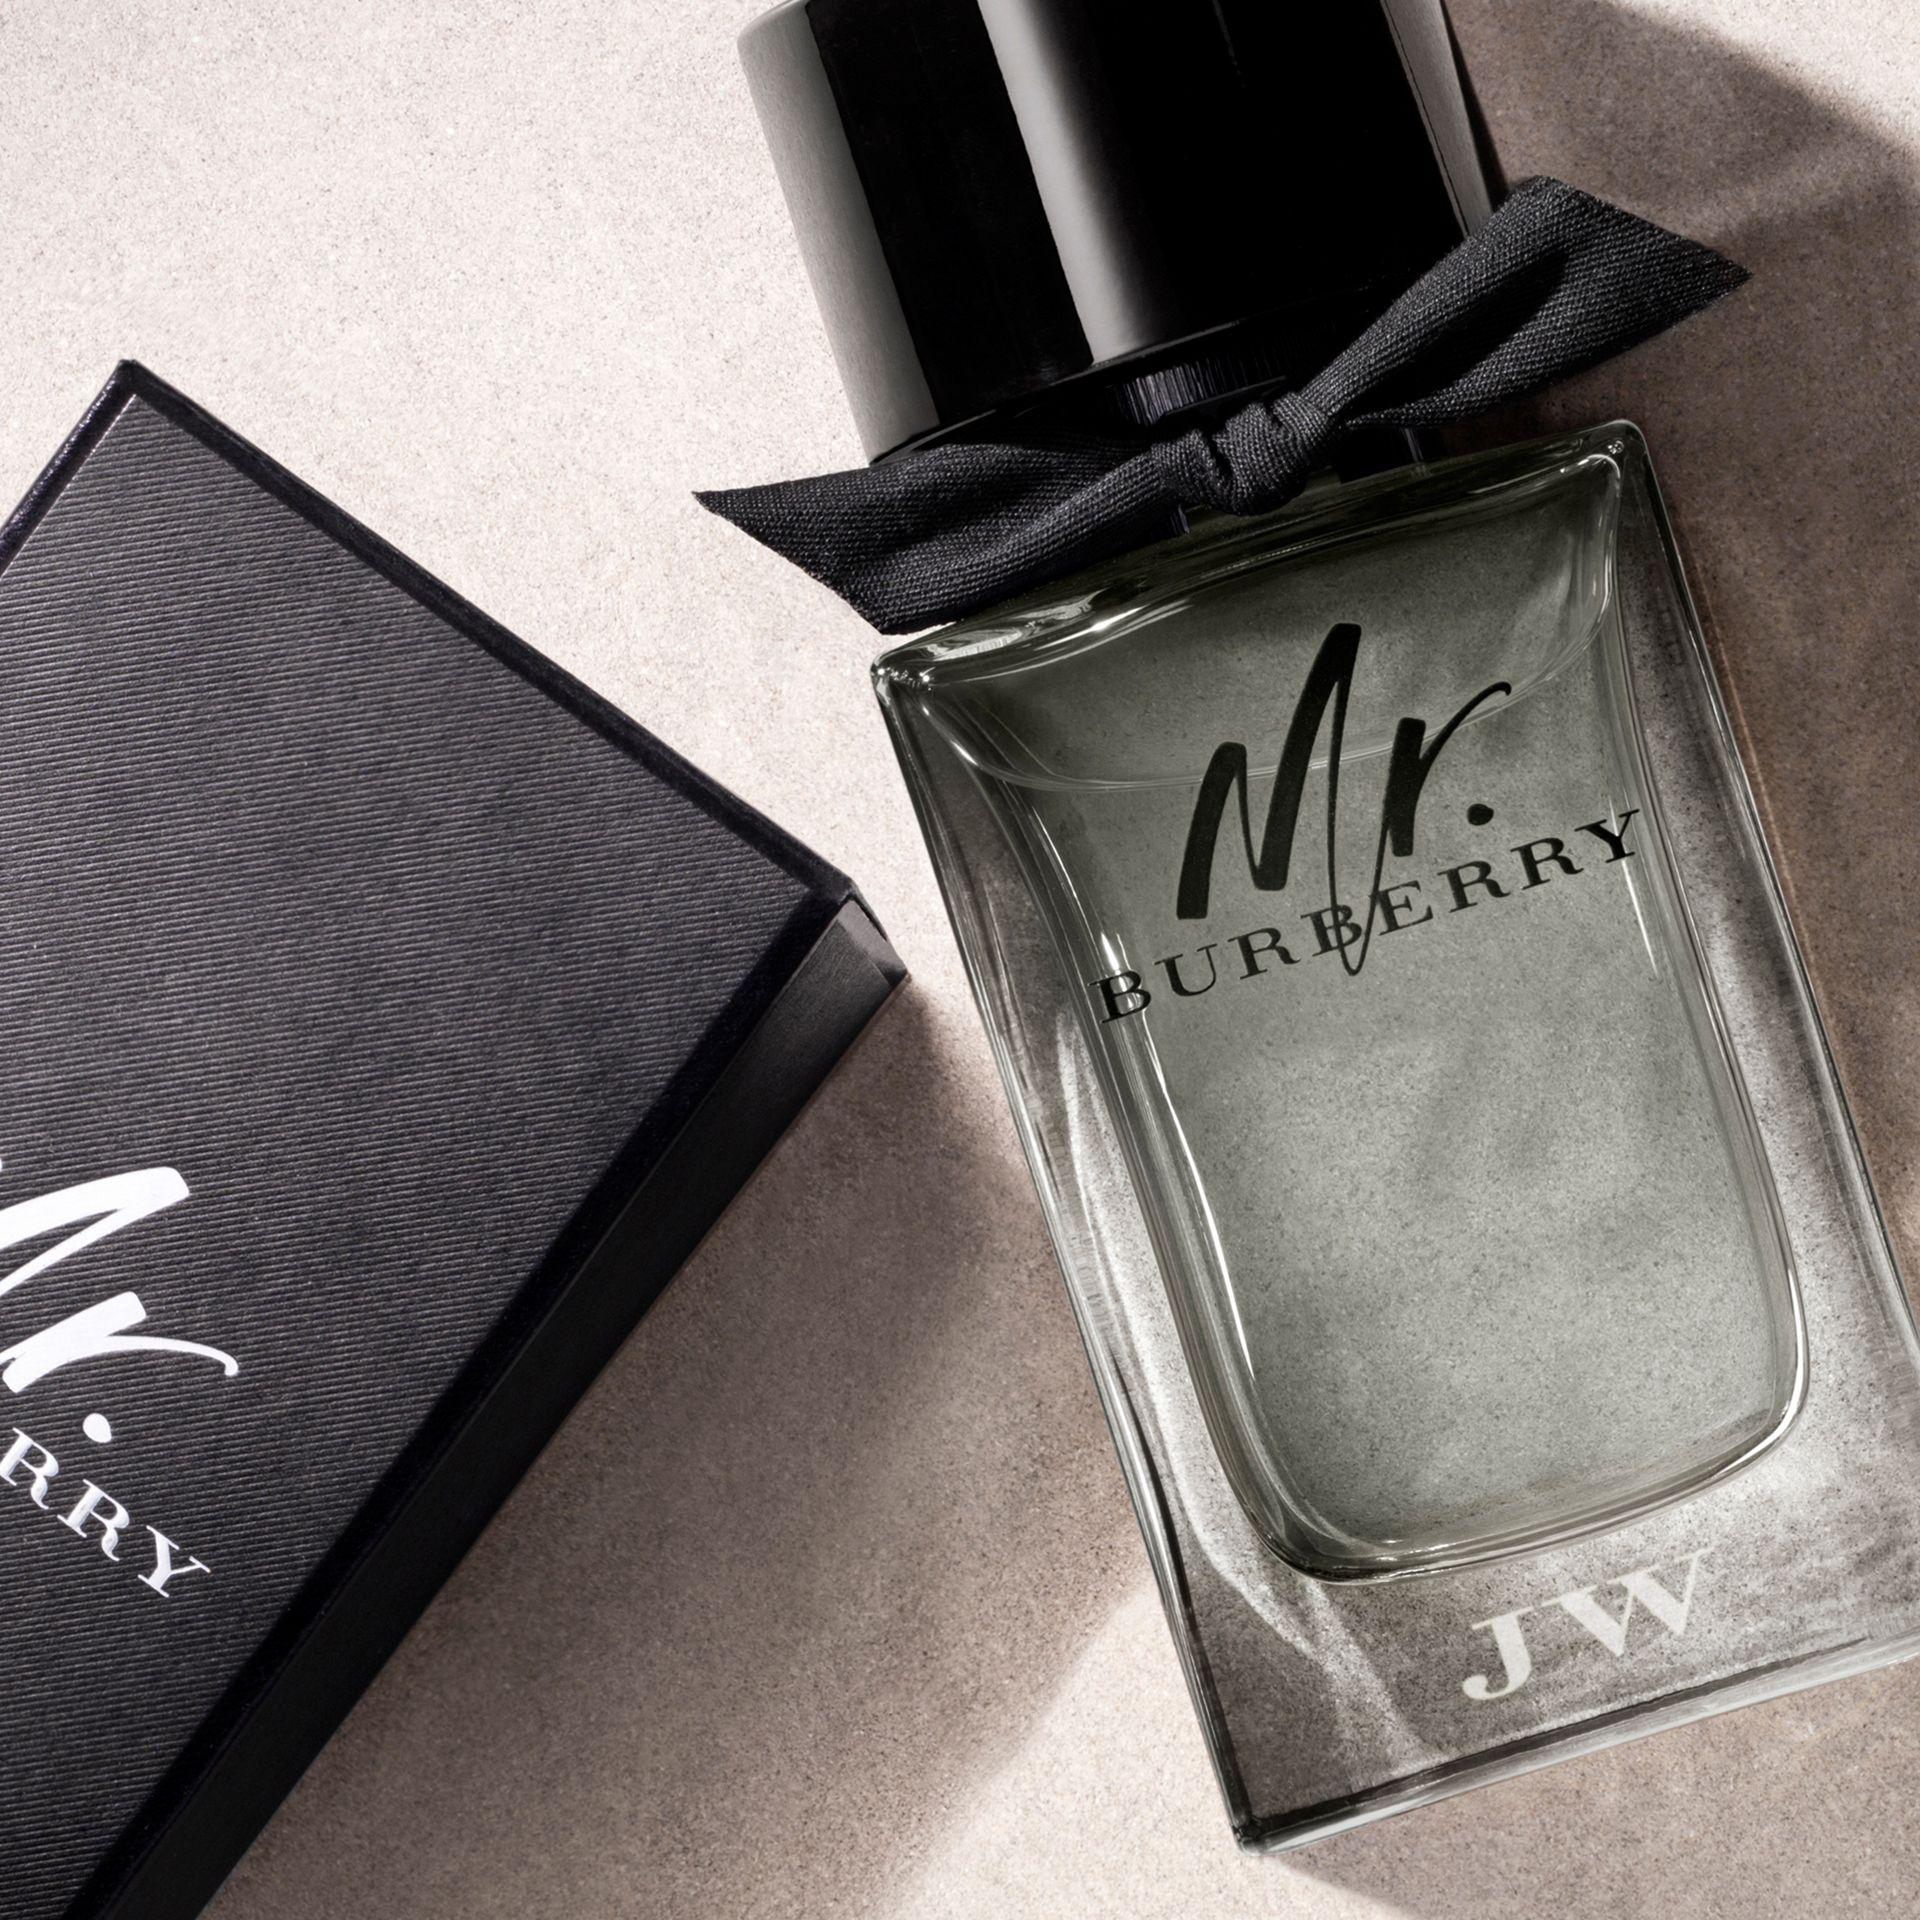 Mr. Burberry Eau de Toilette 1000 ml - Galerie-Bild 4